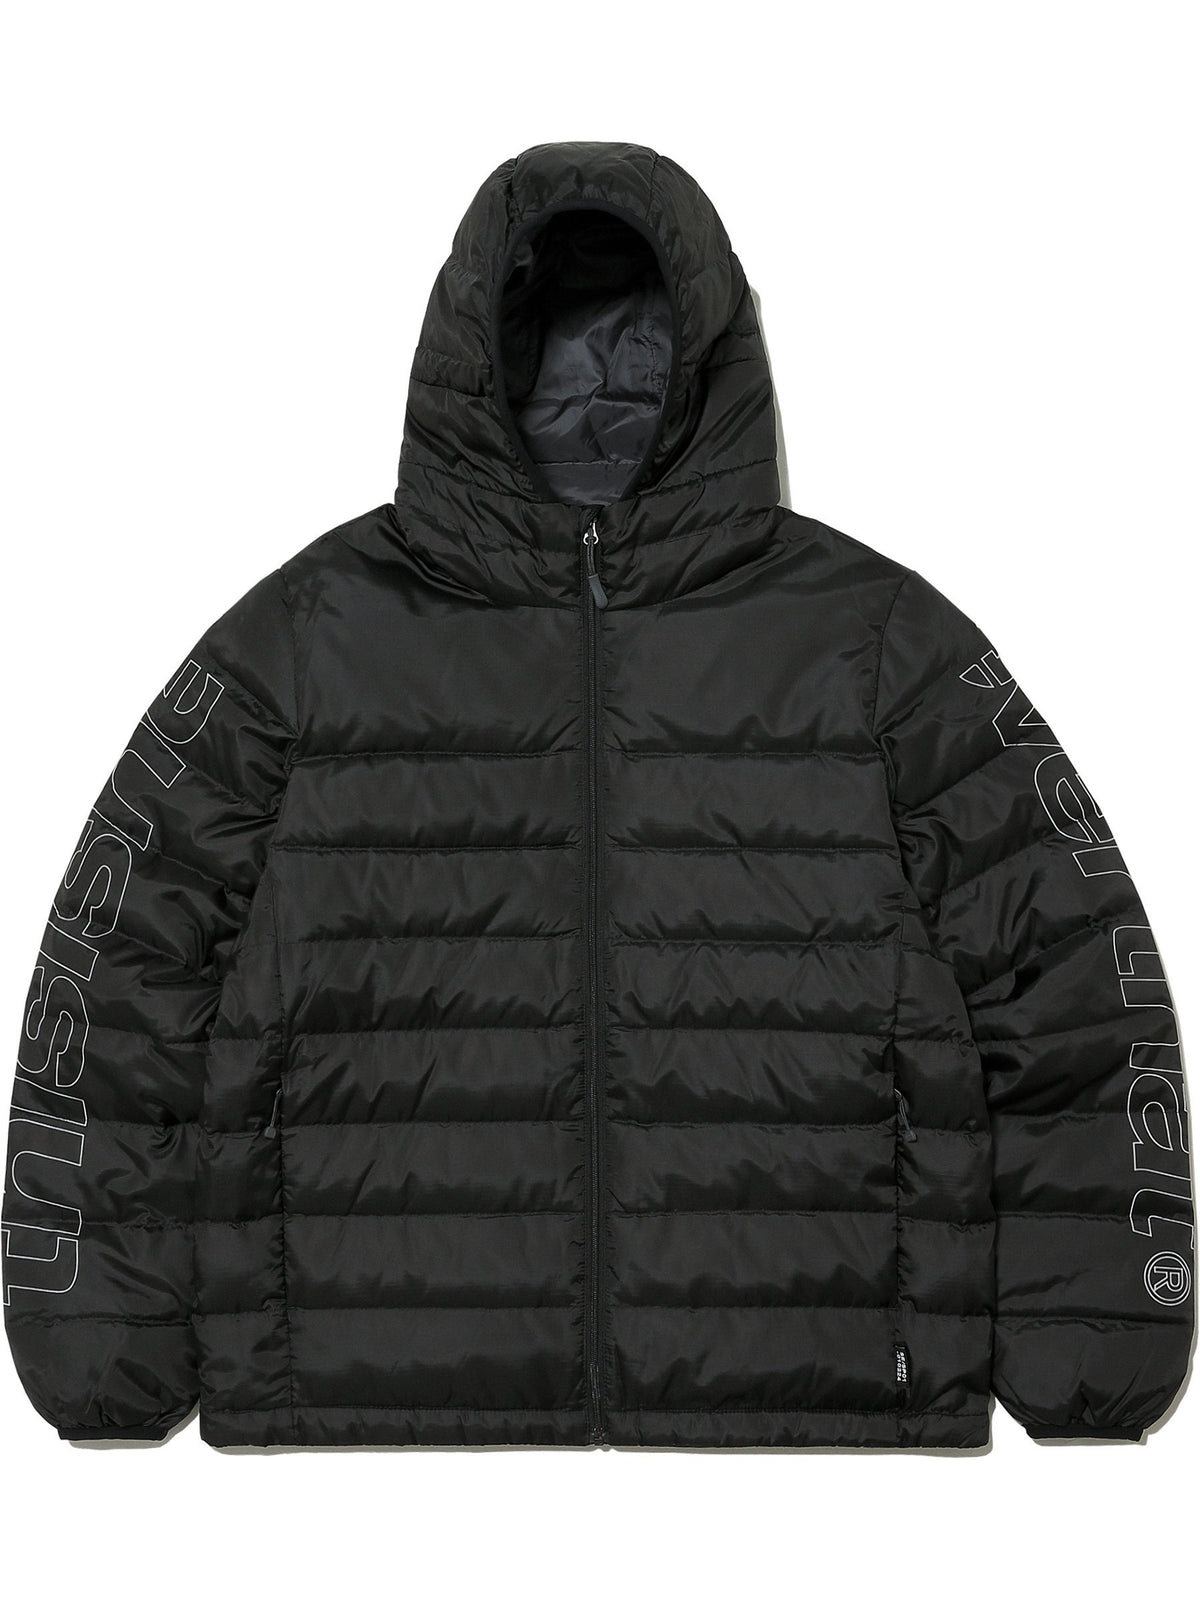 HSP Hooded Down Jacket